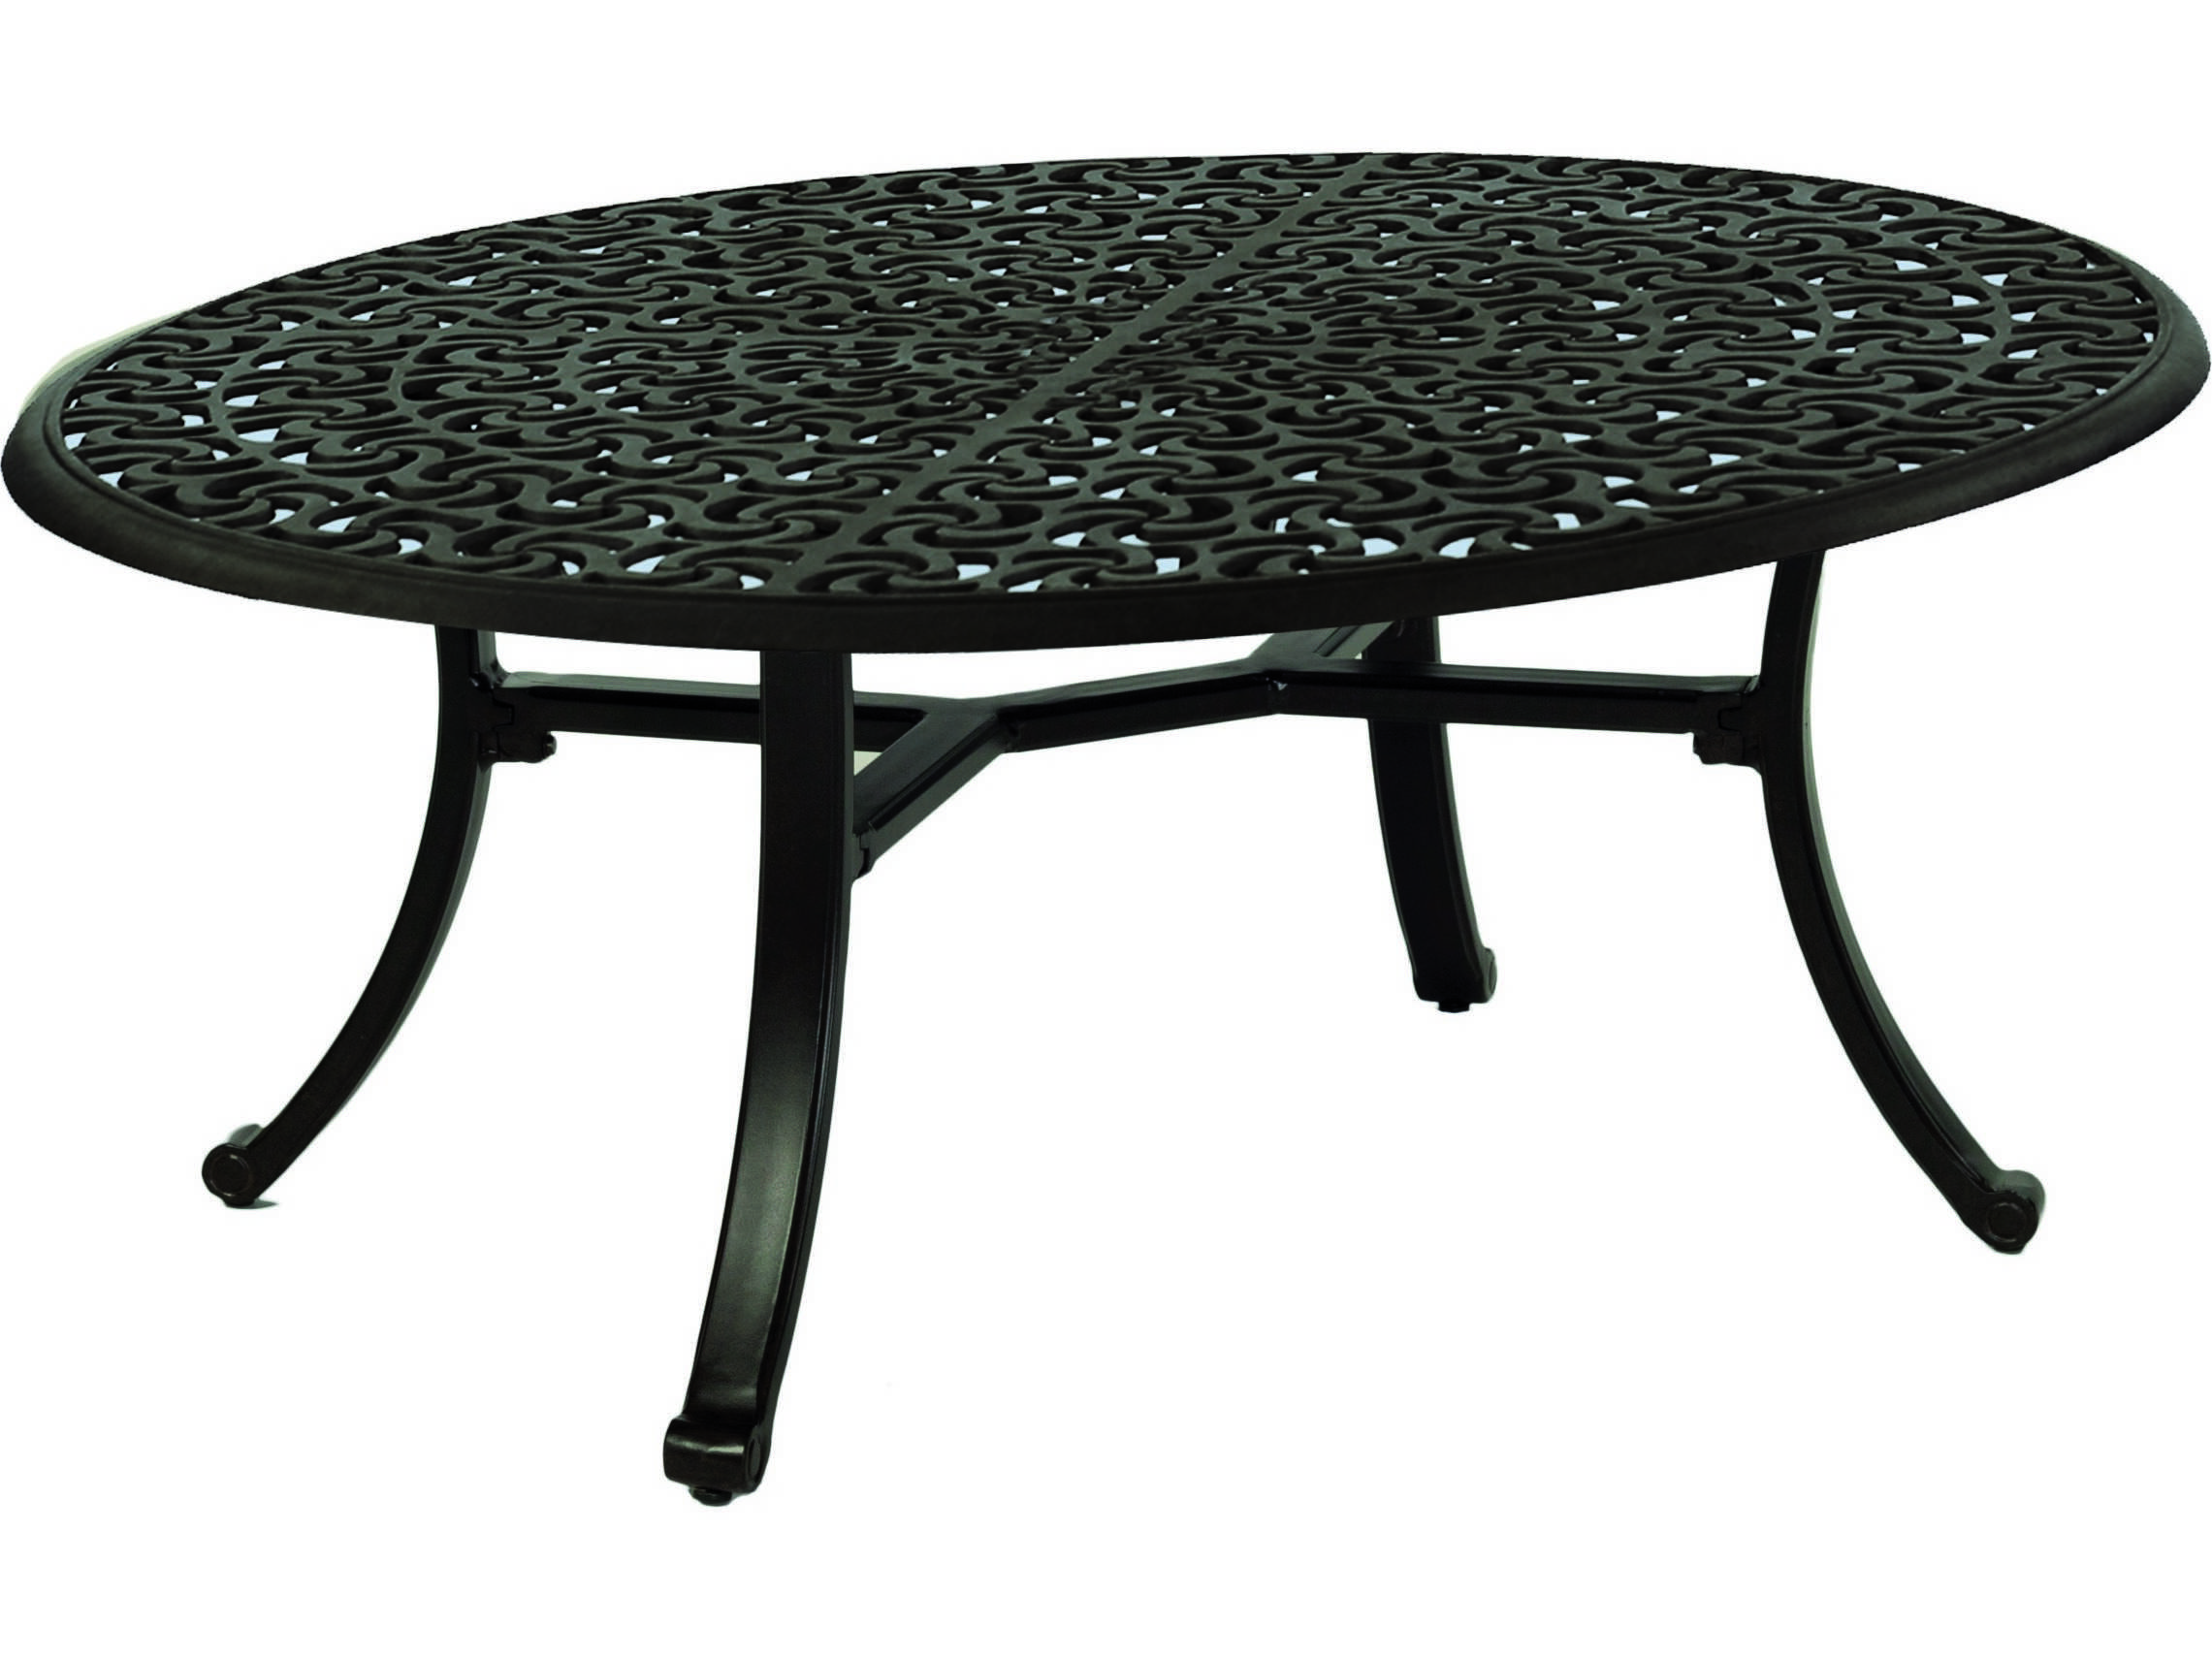 Castelle Sienna Cast Aluminum 47 5 X 32 Elliptical Coffee Table Ready To Assemble Pf492684